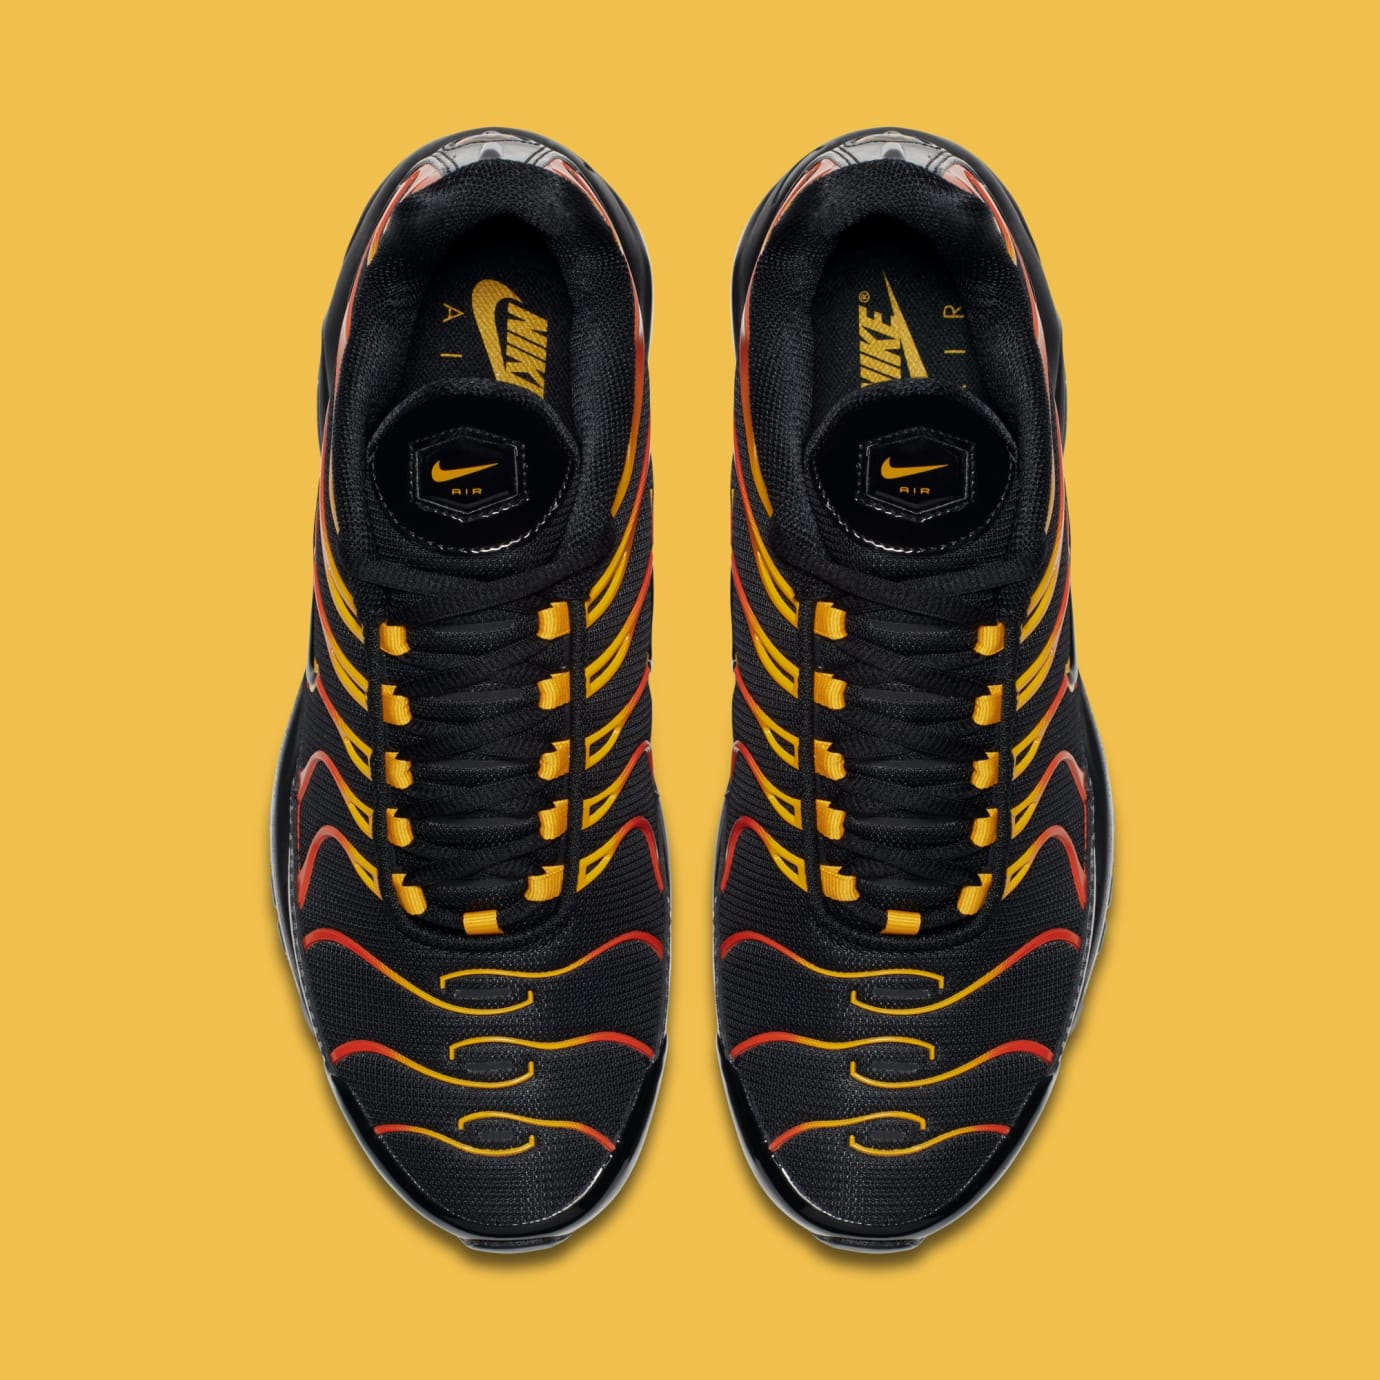 Nike Air Max 97/Plus 'Black/Engine/Shock Orange' AH8144-002 (Top)